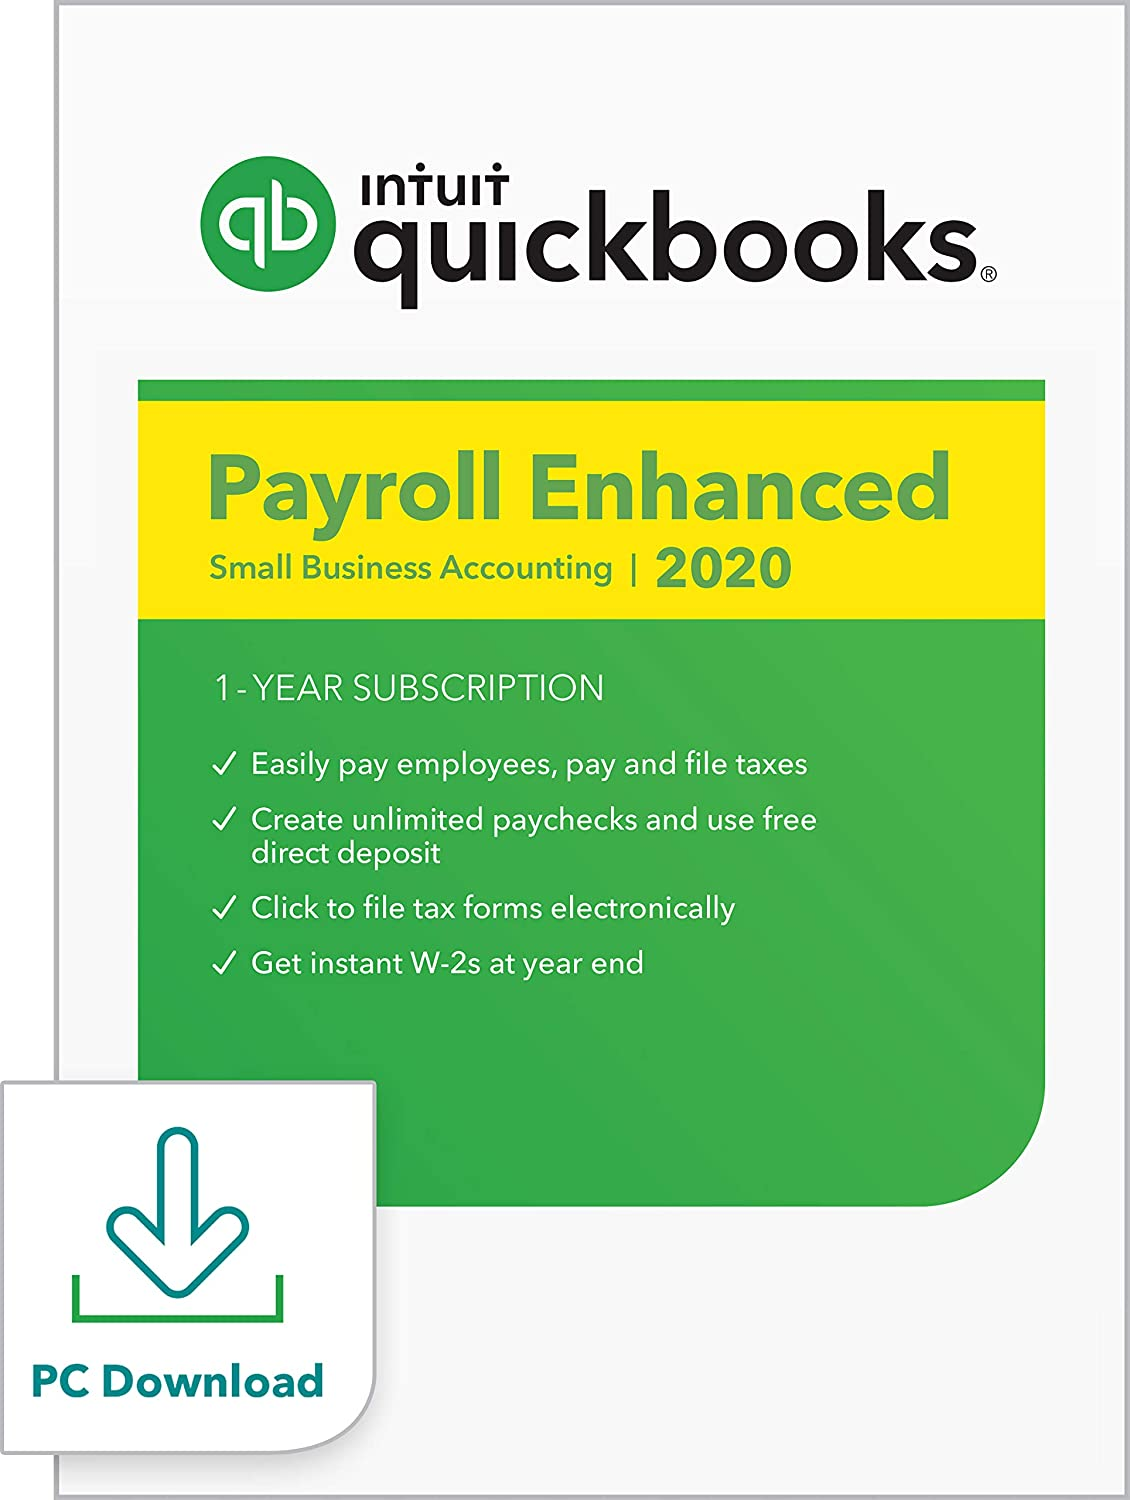 QuickBooks Desktop Enhanced Payroll 2020 I Compatible with QuickBooks Pro, Premier, and Enterprise [PC Download]